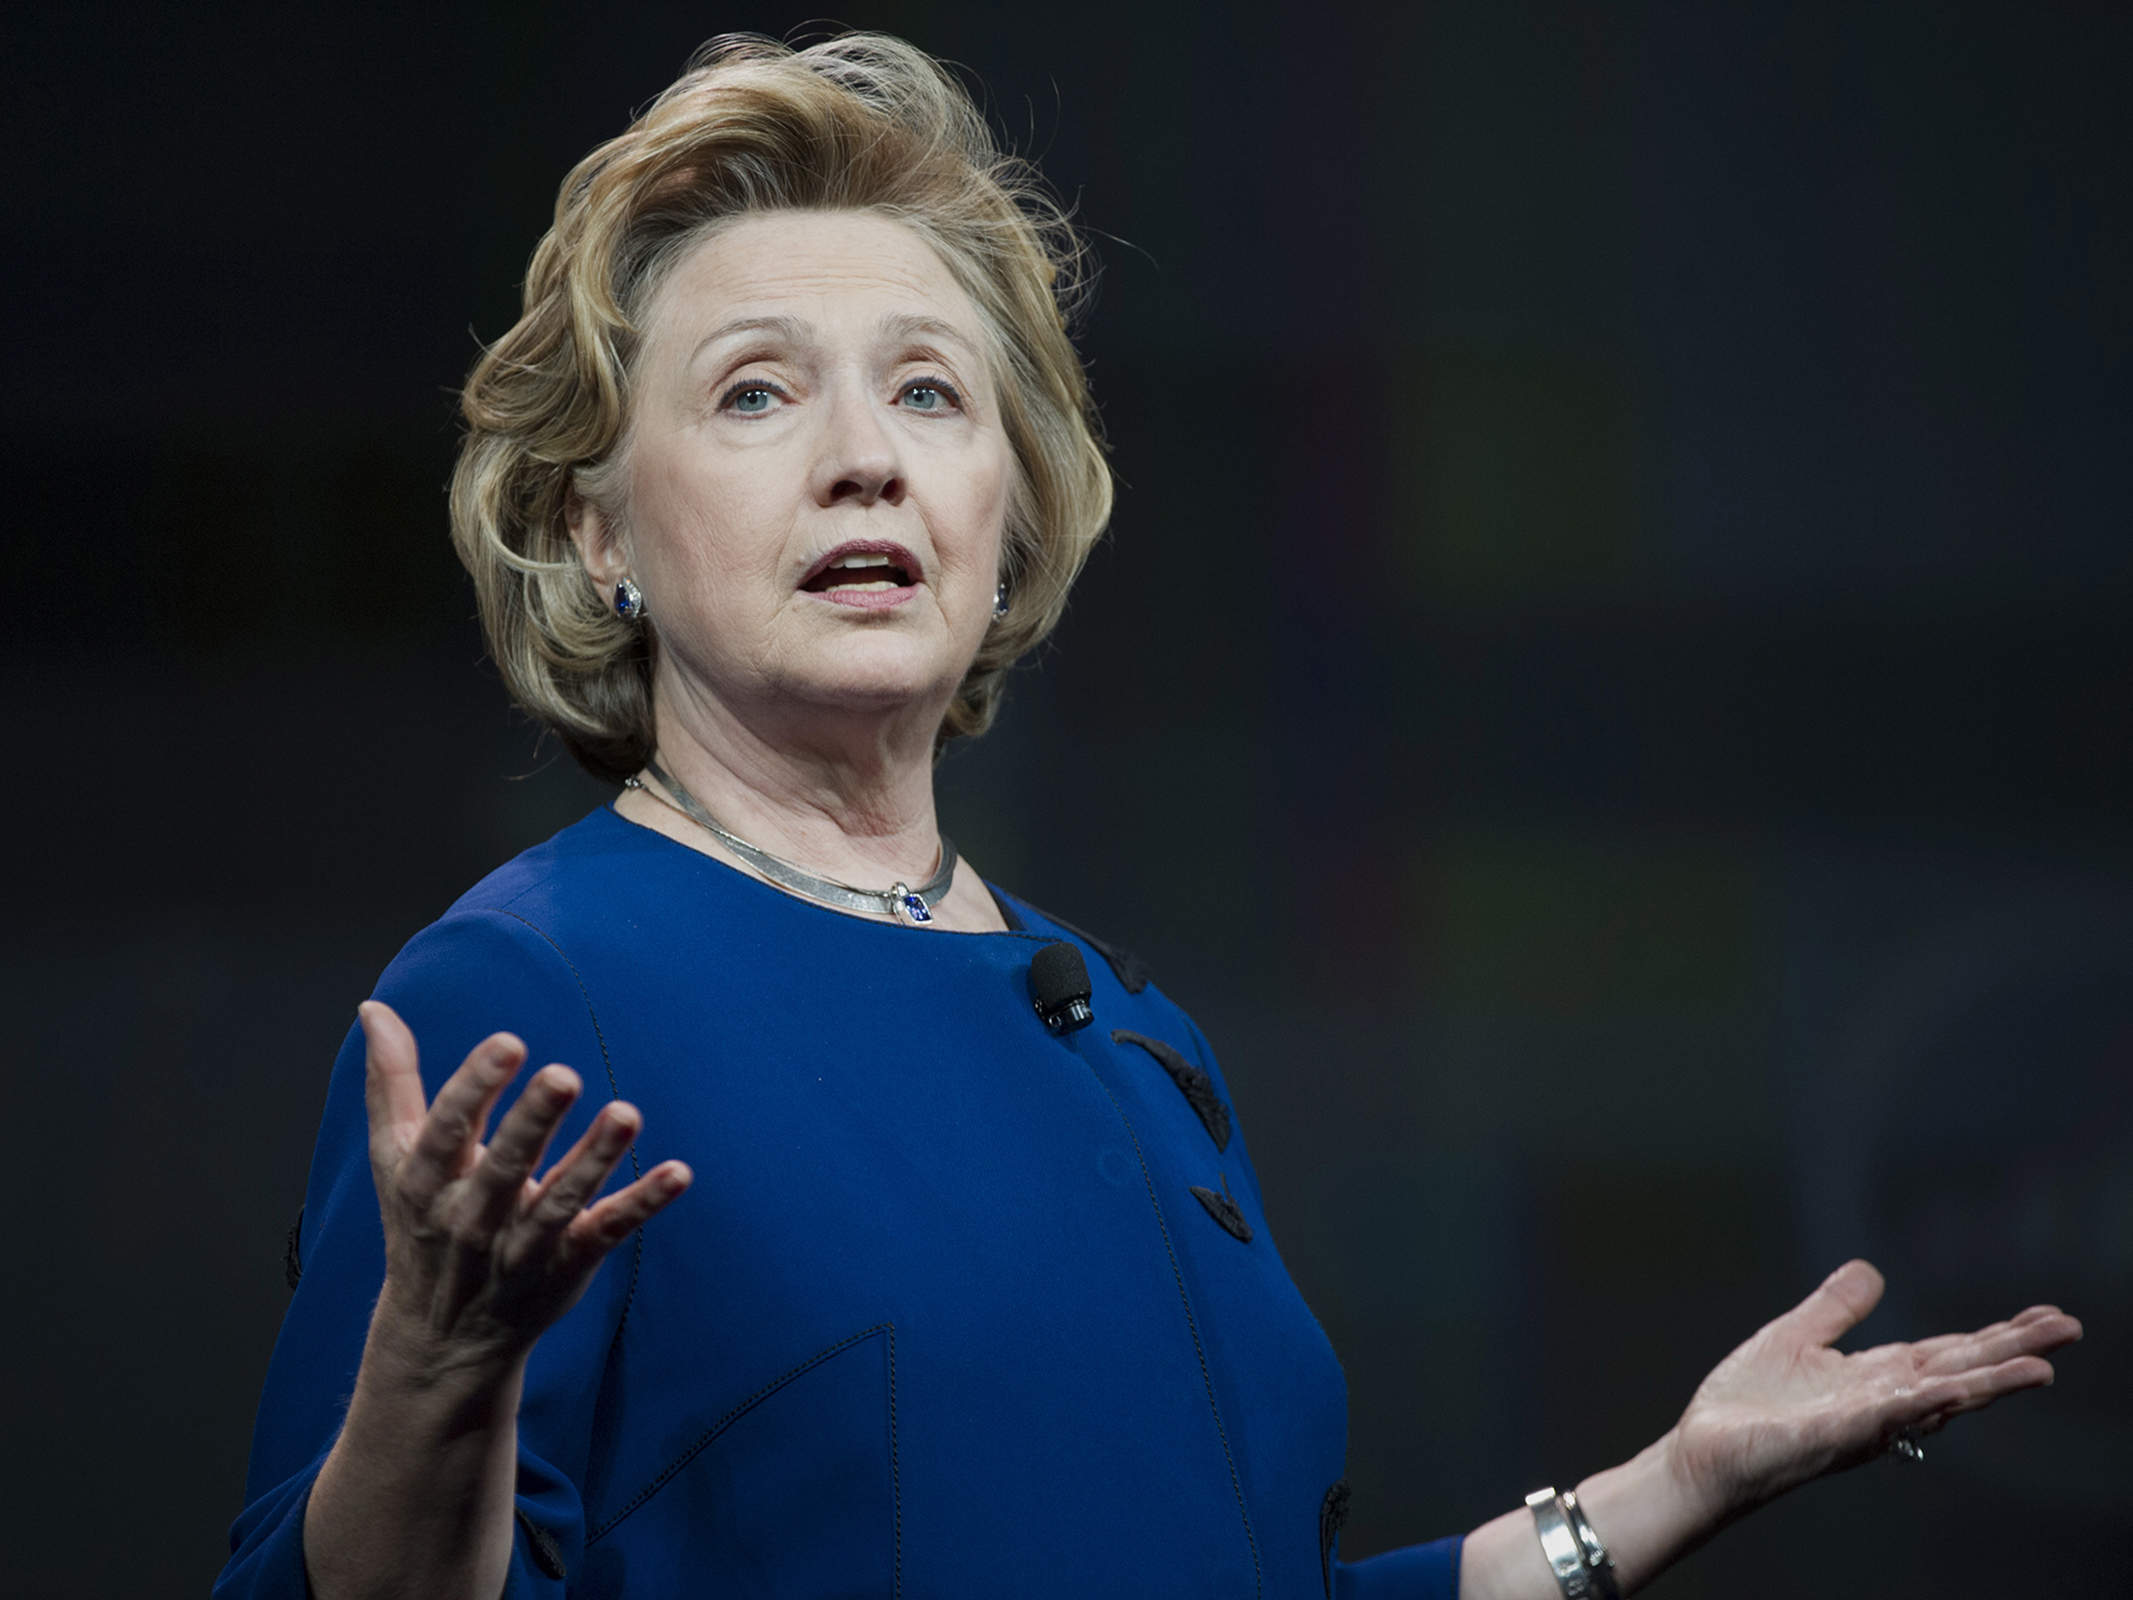 The new stateswoman: Hillary Clinton's steely idealism